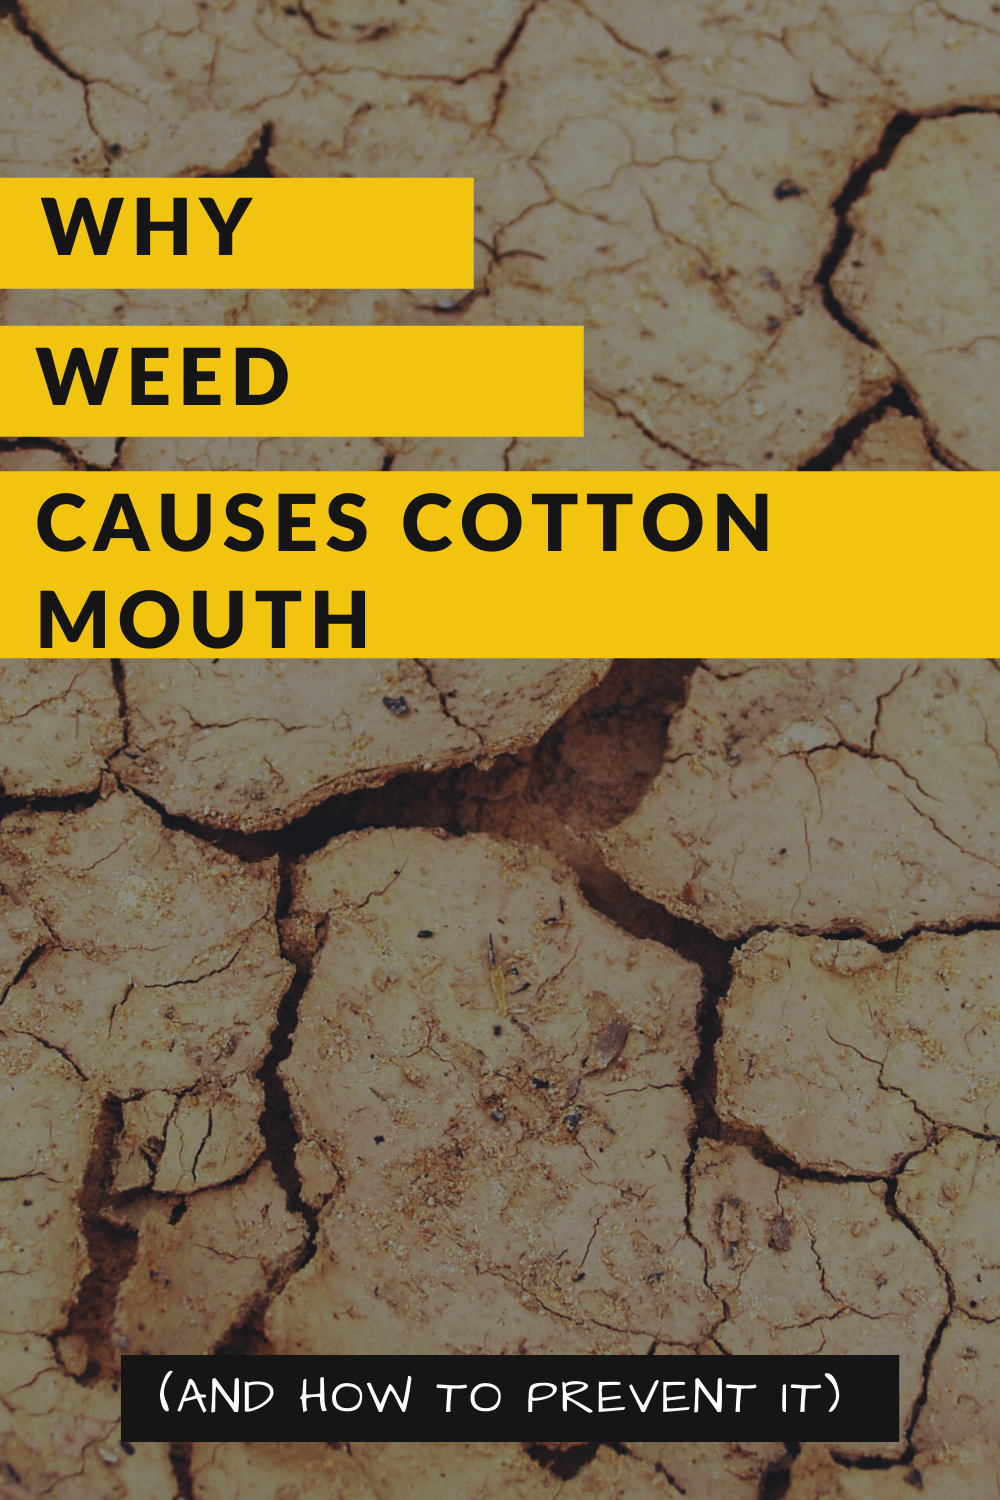 Why Weed Causes Cotton Mouth